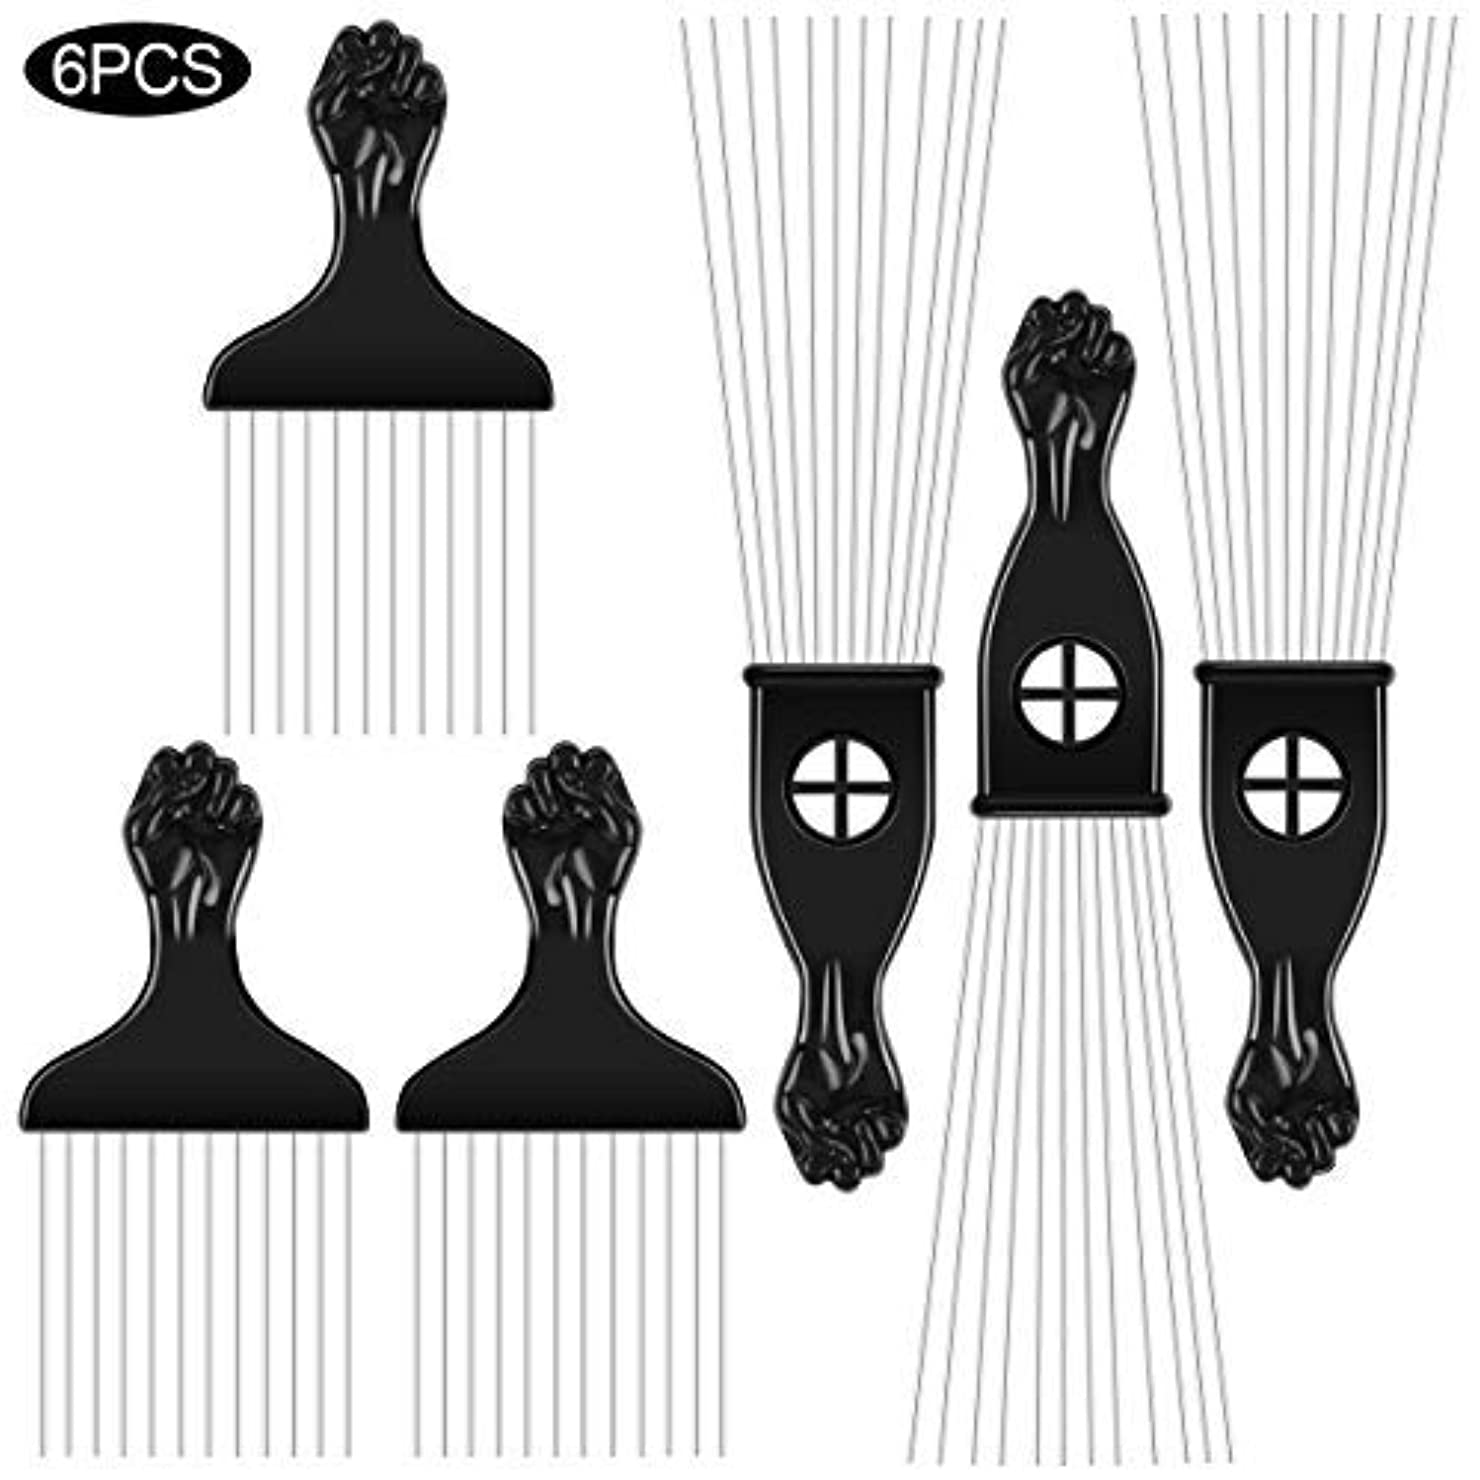 に同意する結び目交換6PCS Afro Combs Metal African American black Fist Pick Comb Hairdressing Styling Tool [並行輸入品]